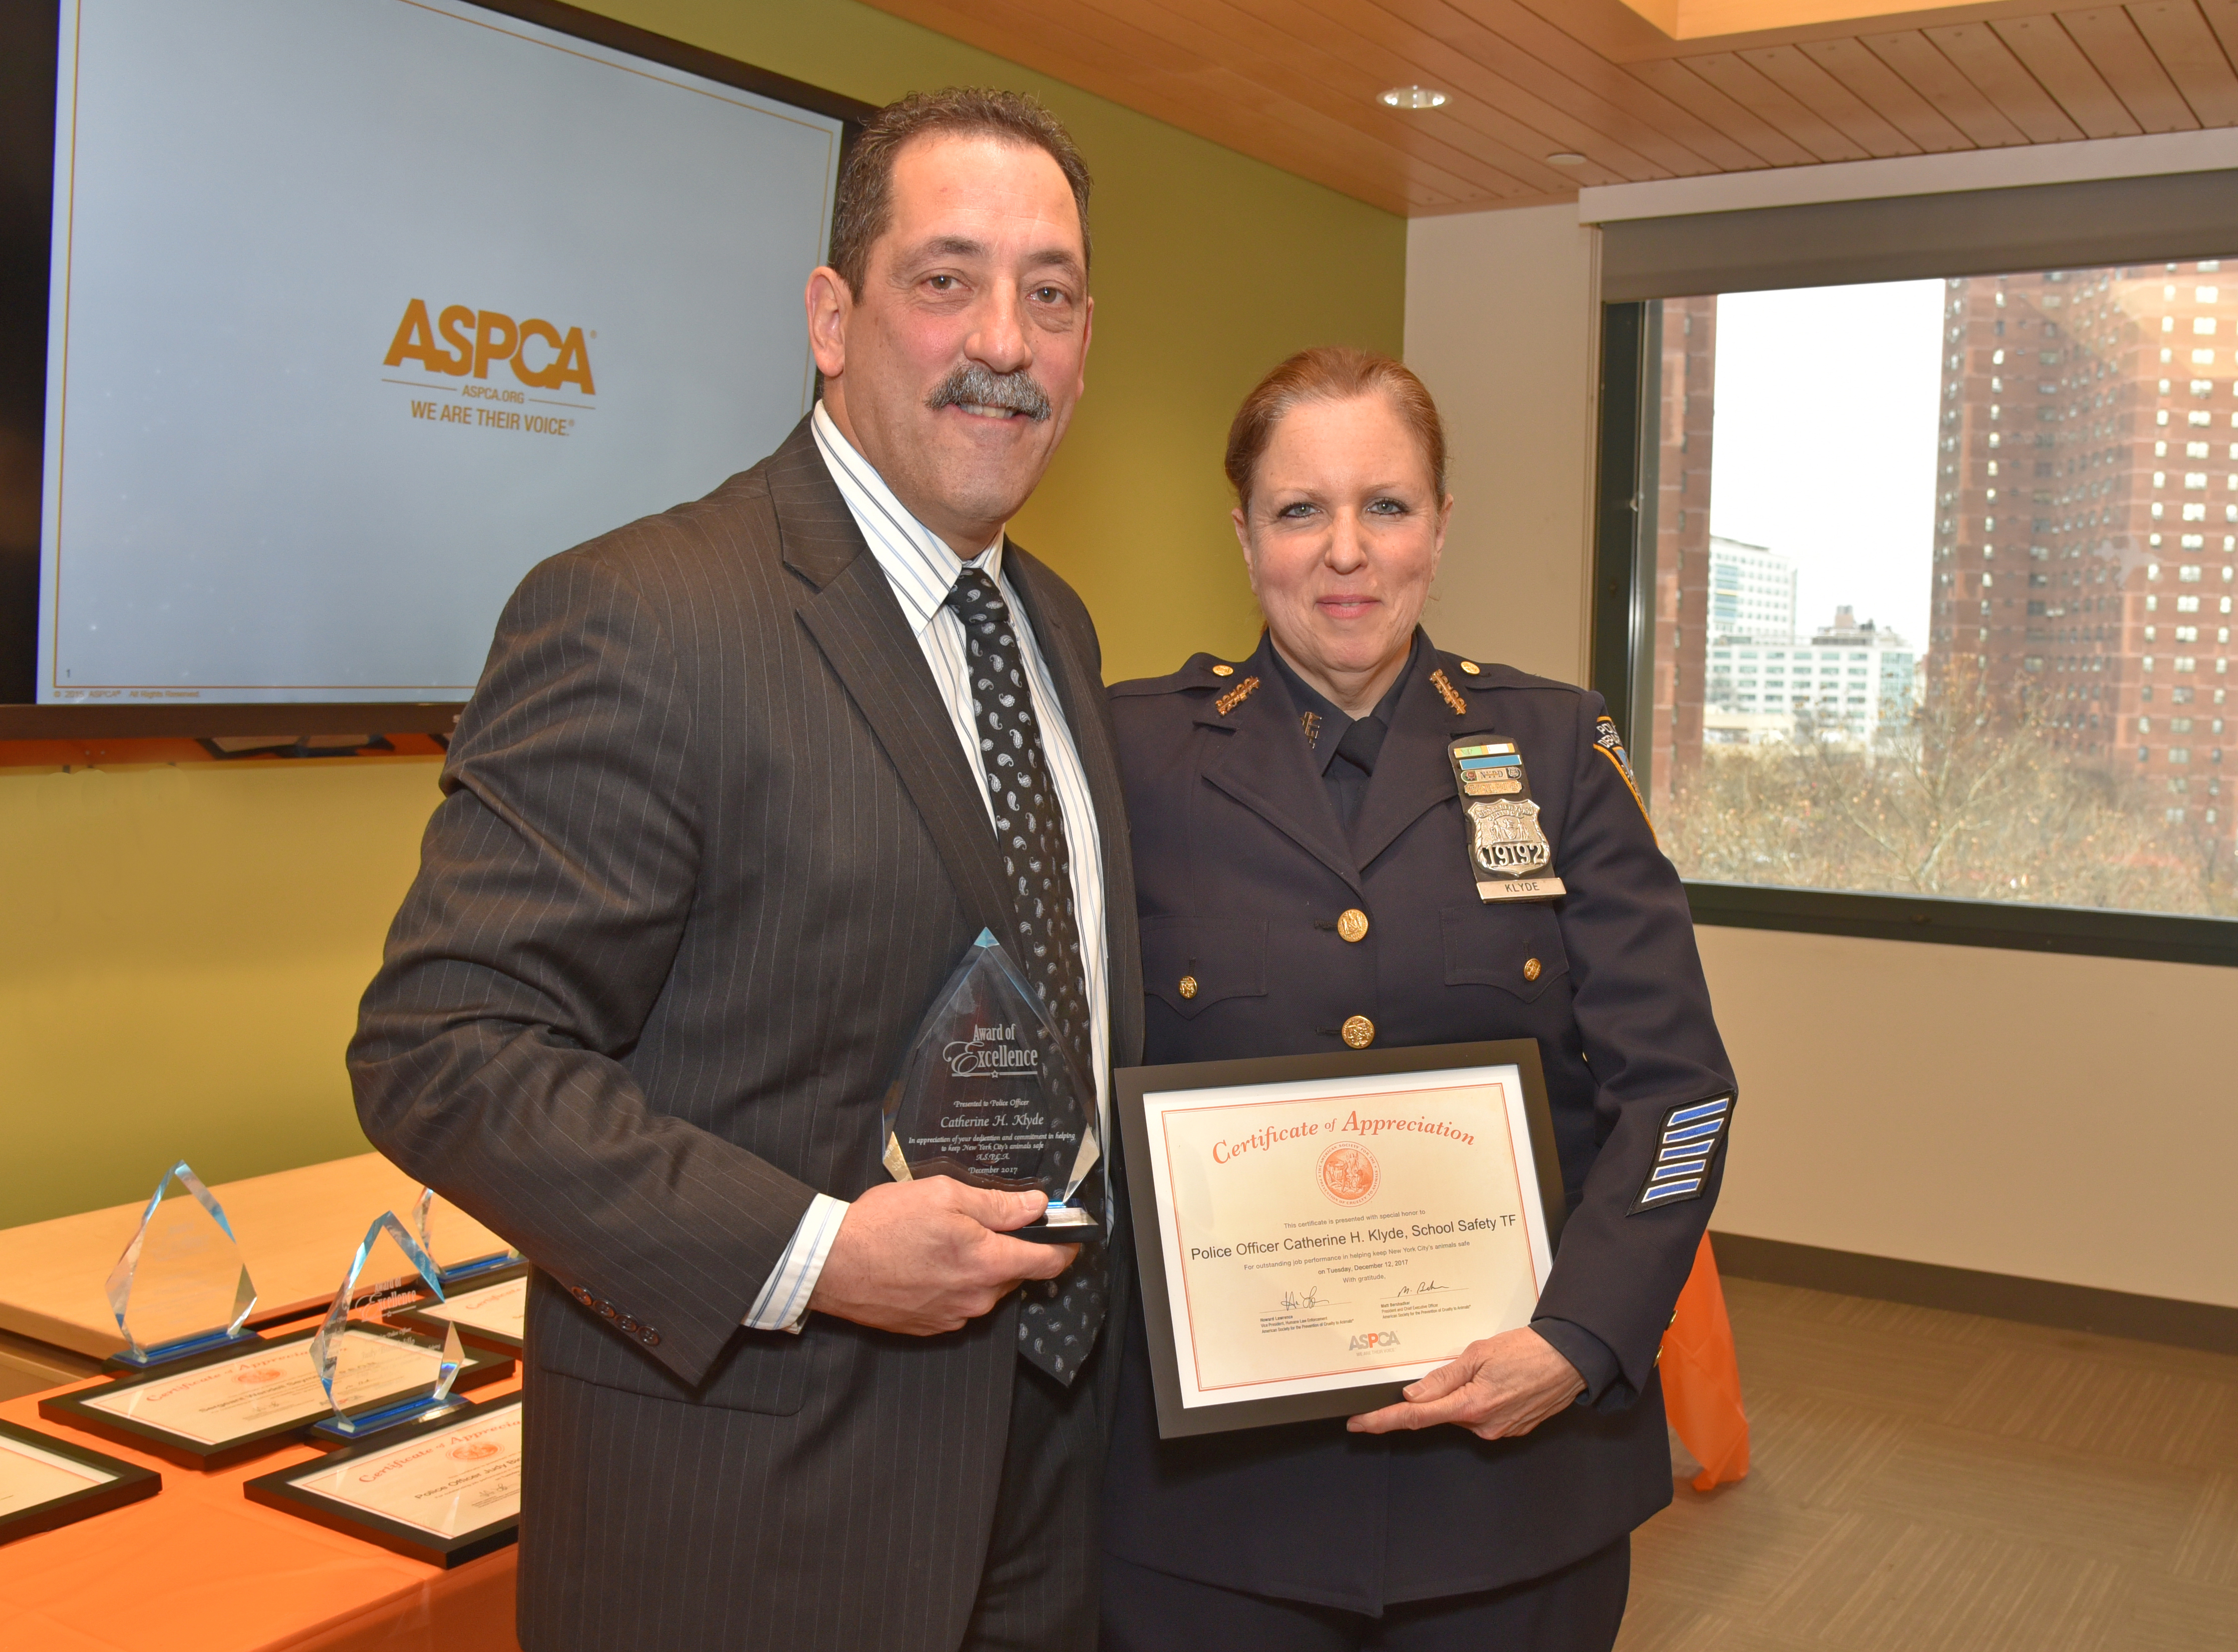 Police Officer Catherine H. Klyde, School Safety Division